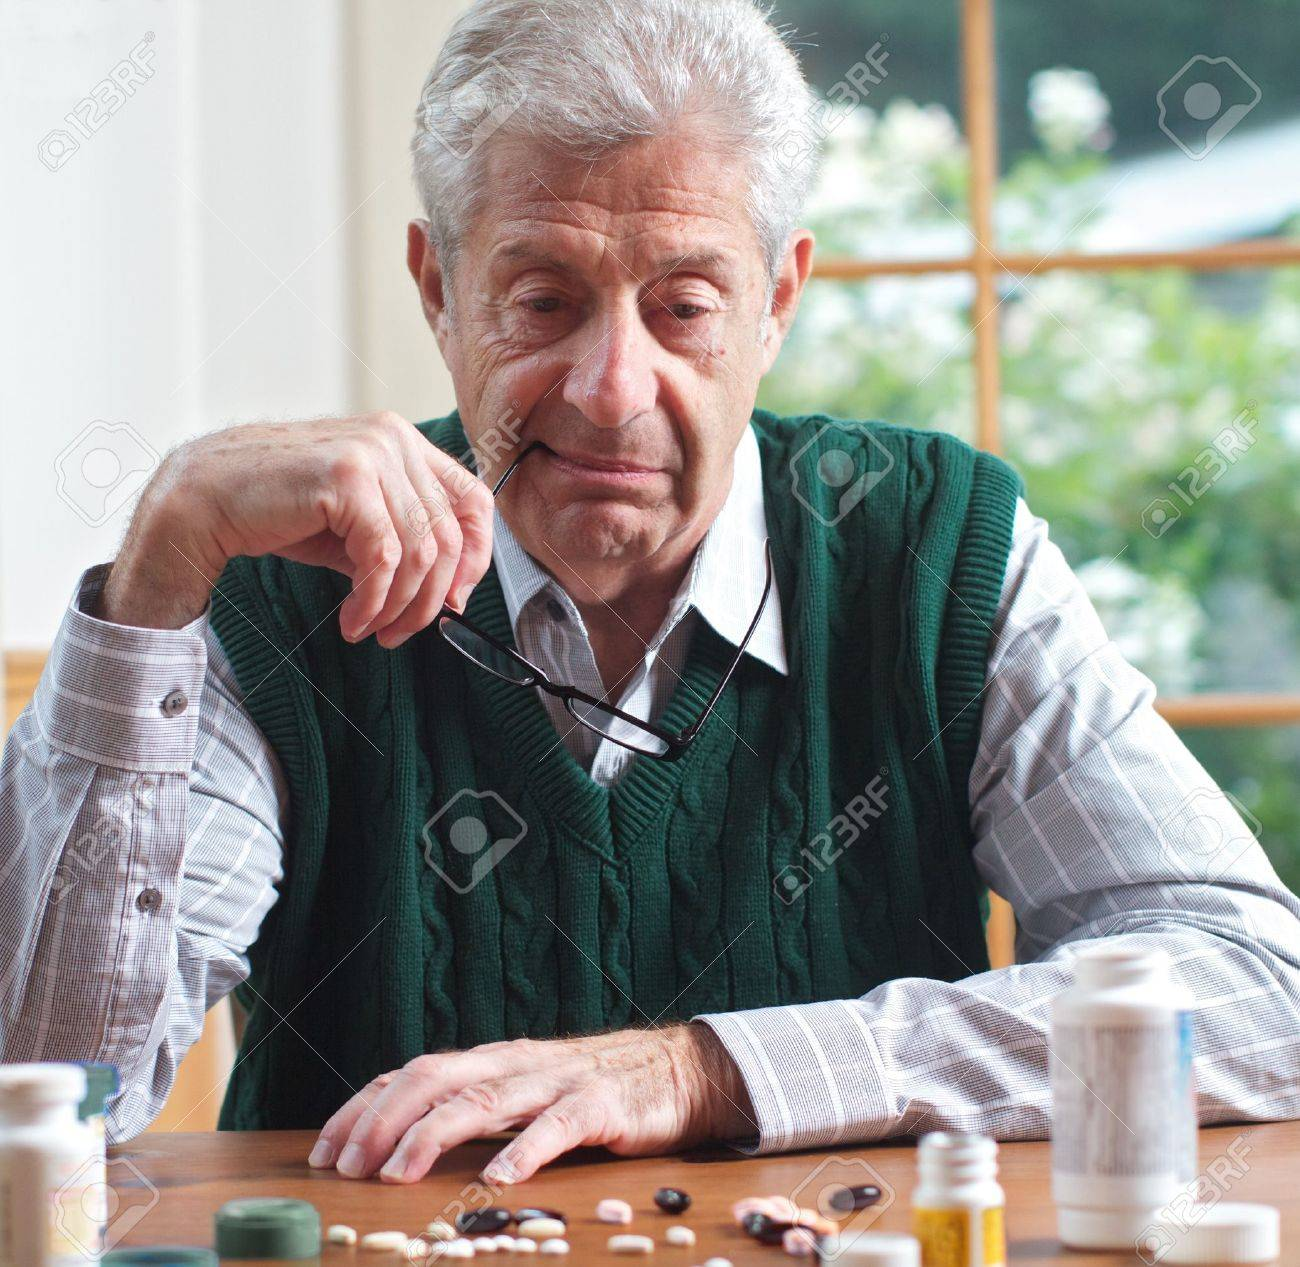 Senior man with glasses in hand looks thoughtfully at many pills on table in front of him  Focus on man  Frontal view, square format, green and white color palatte Stock Photo - 14546619